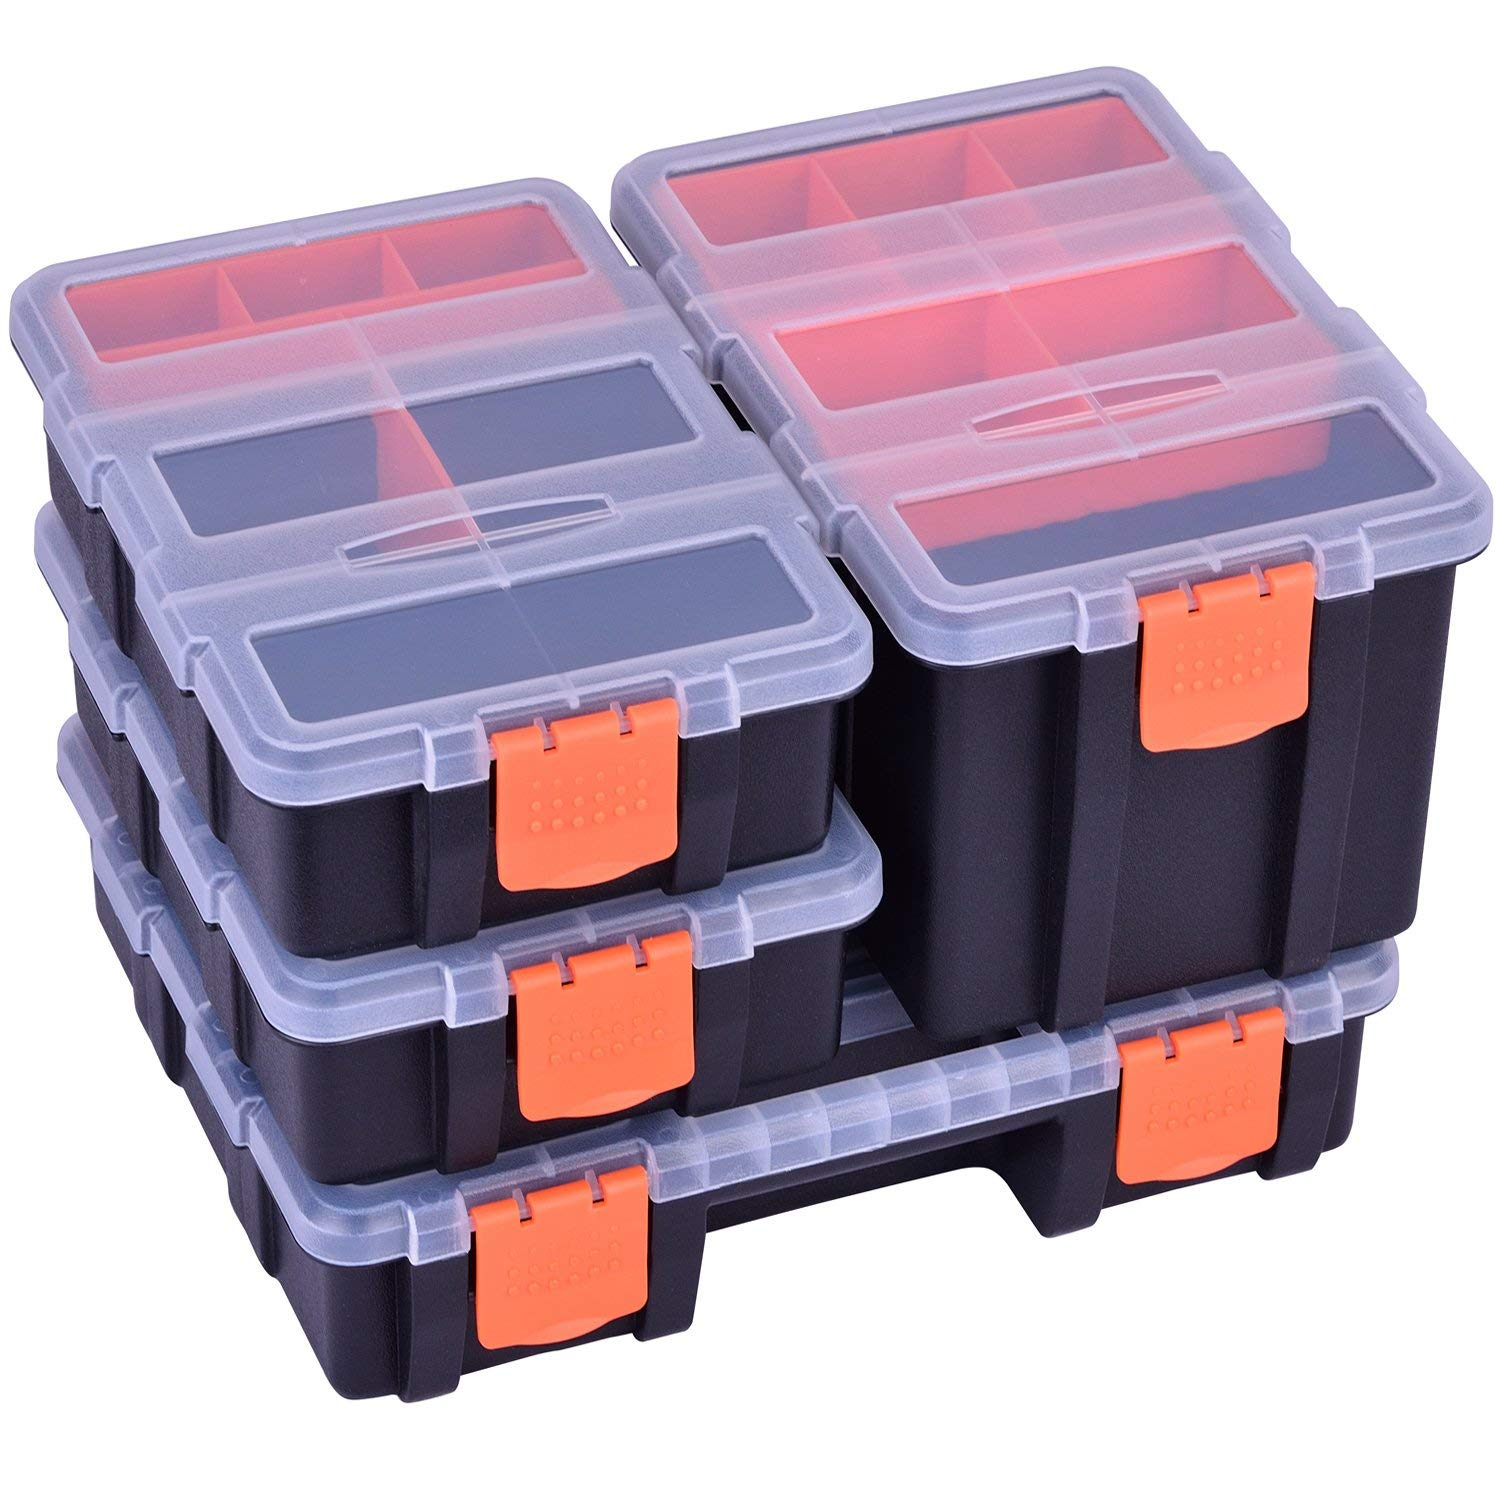 Tool Box with 4 Organizers, Multi-function Removable Compartment Storage with Transparent Lid for Small Parts, Hardware, Fish Tackle, Beads